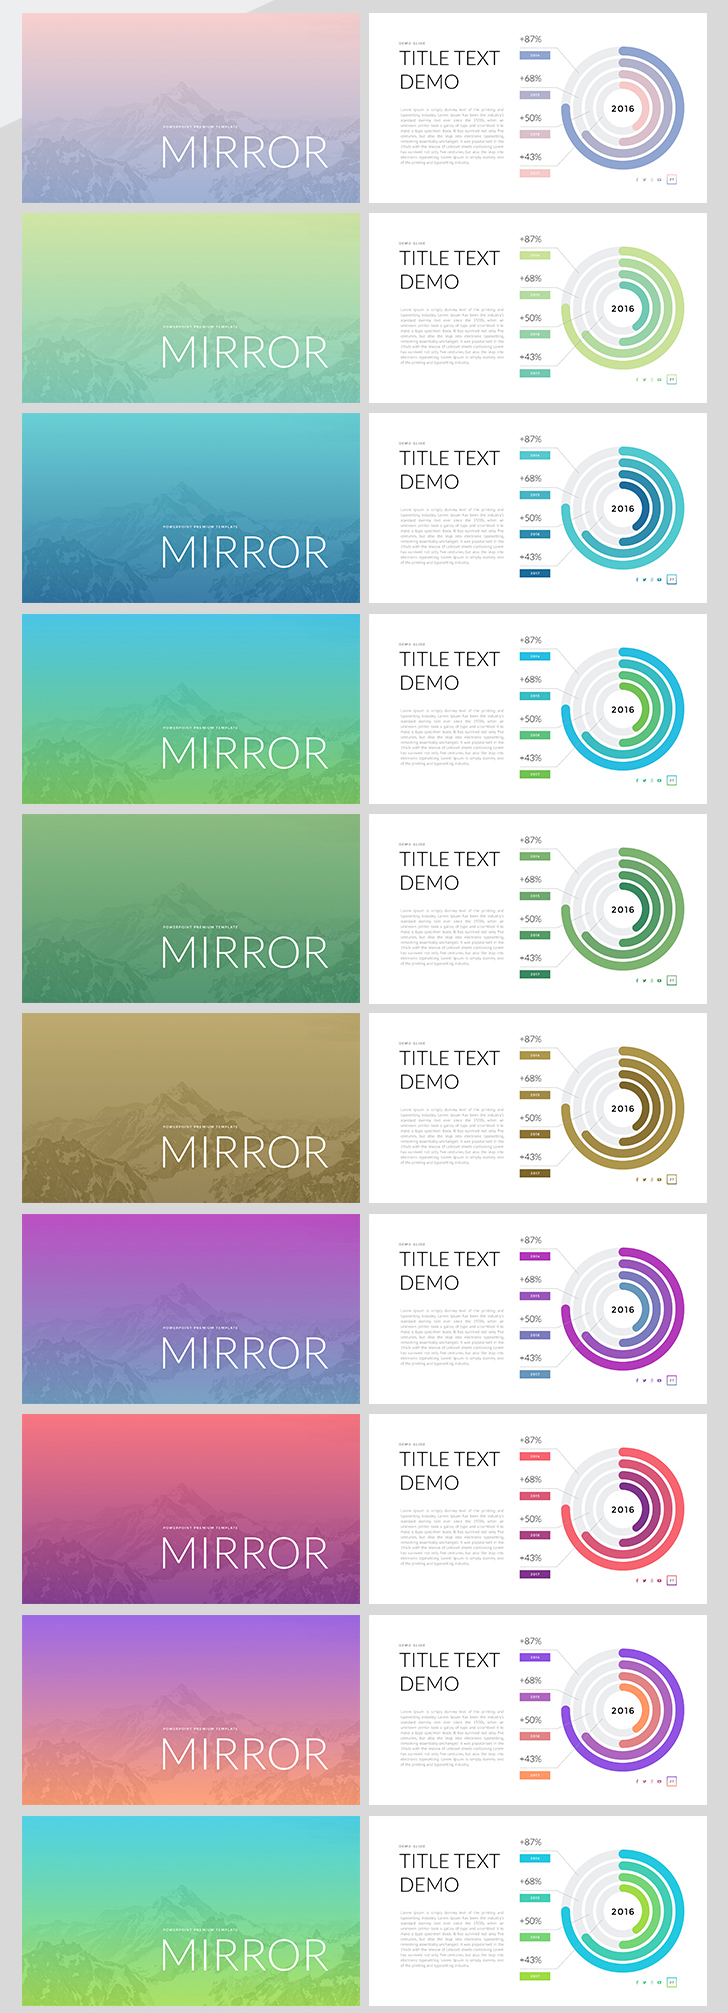 mirror keynote template for mac download now